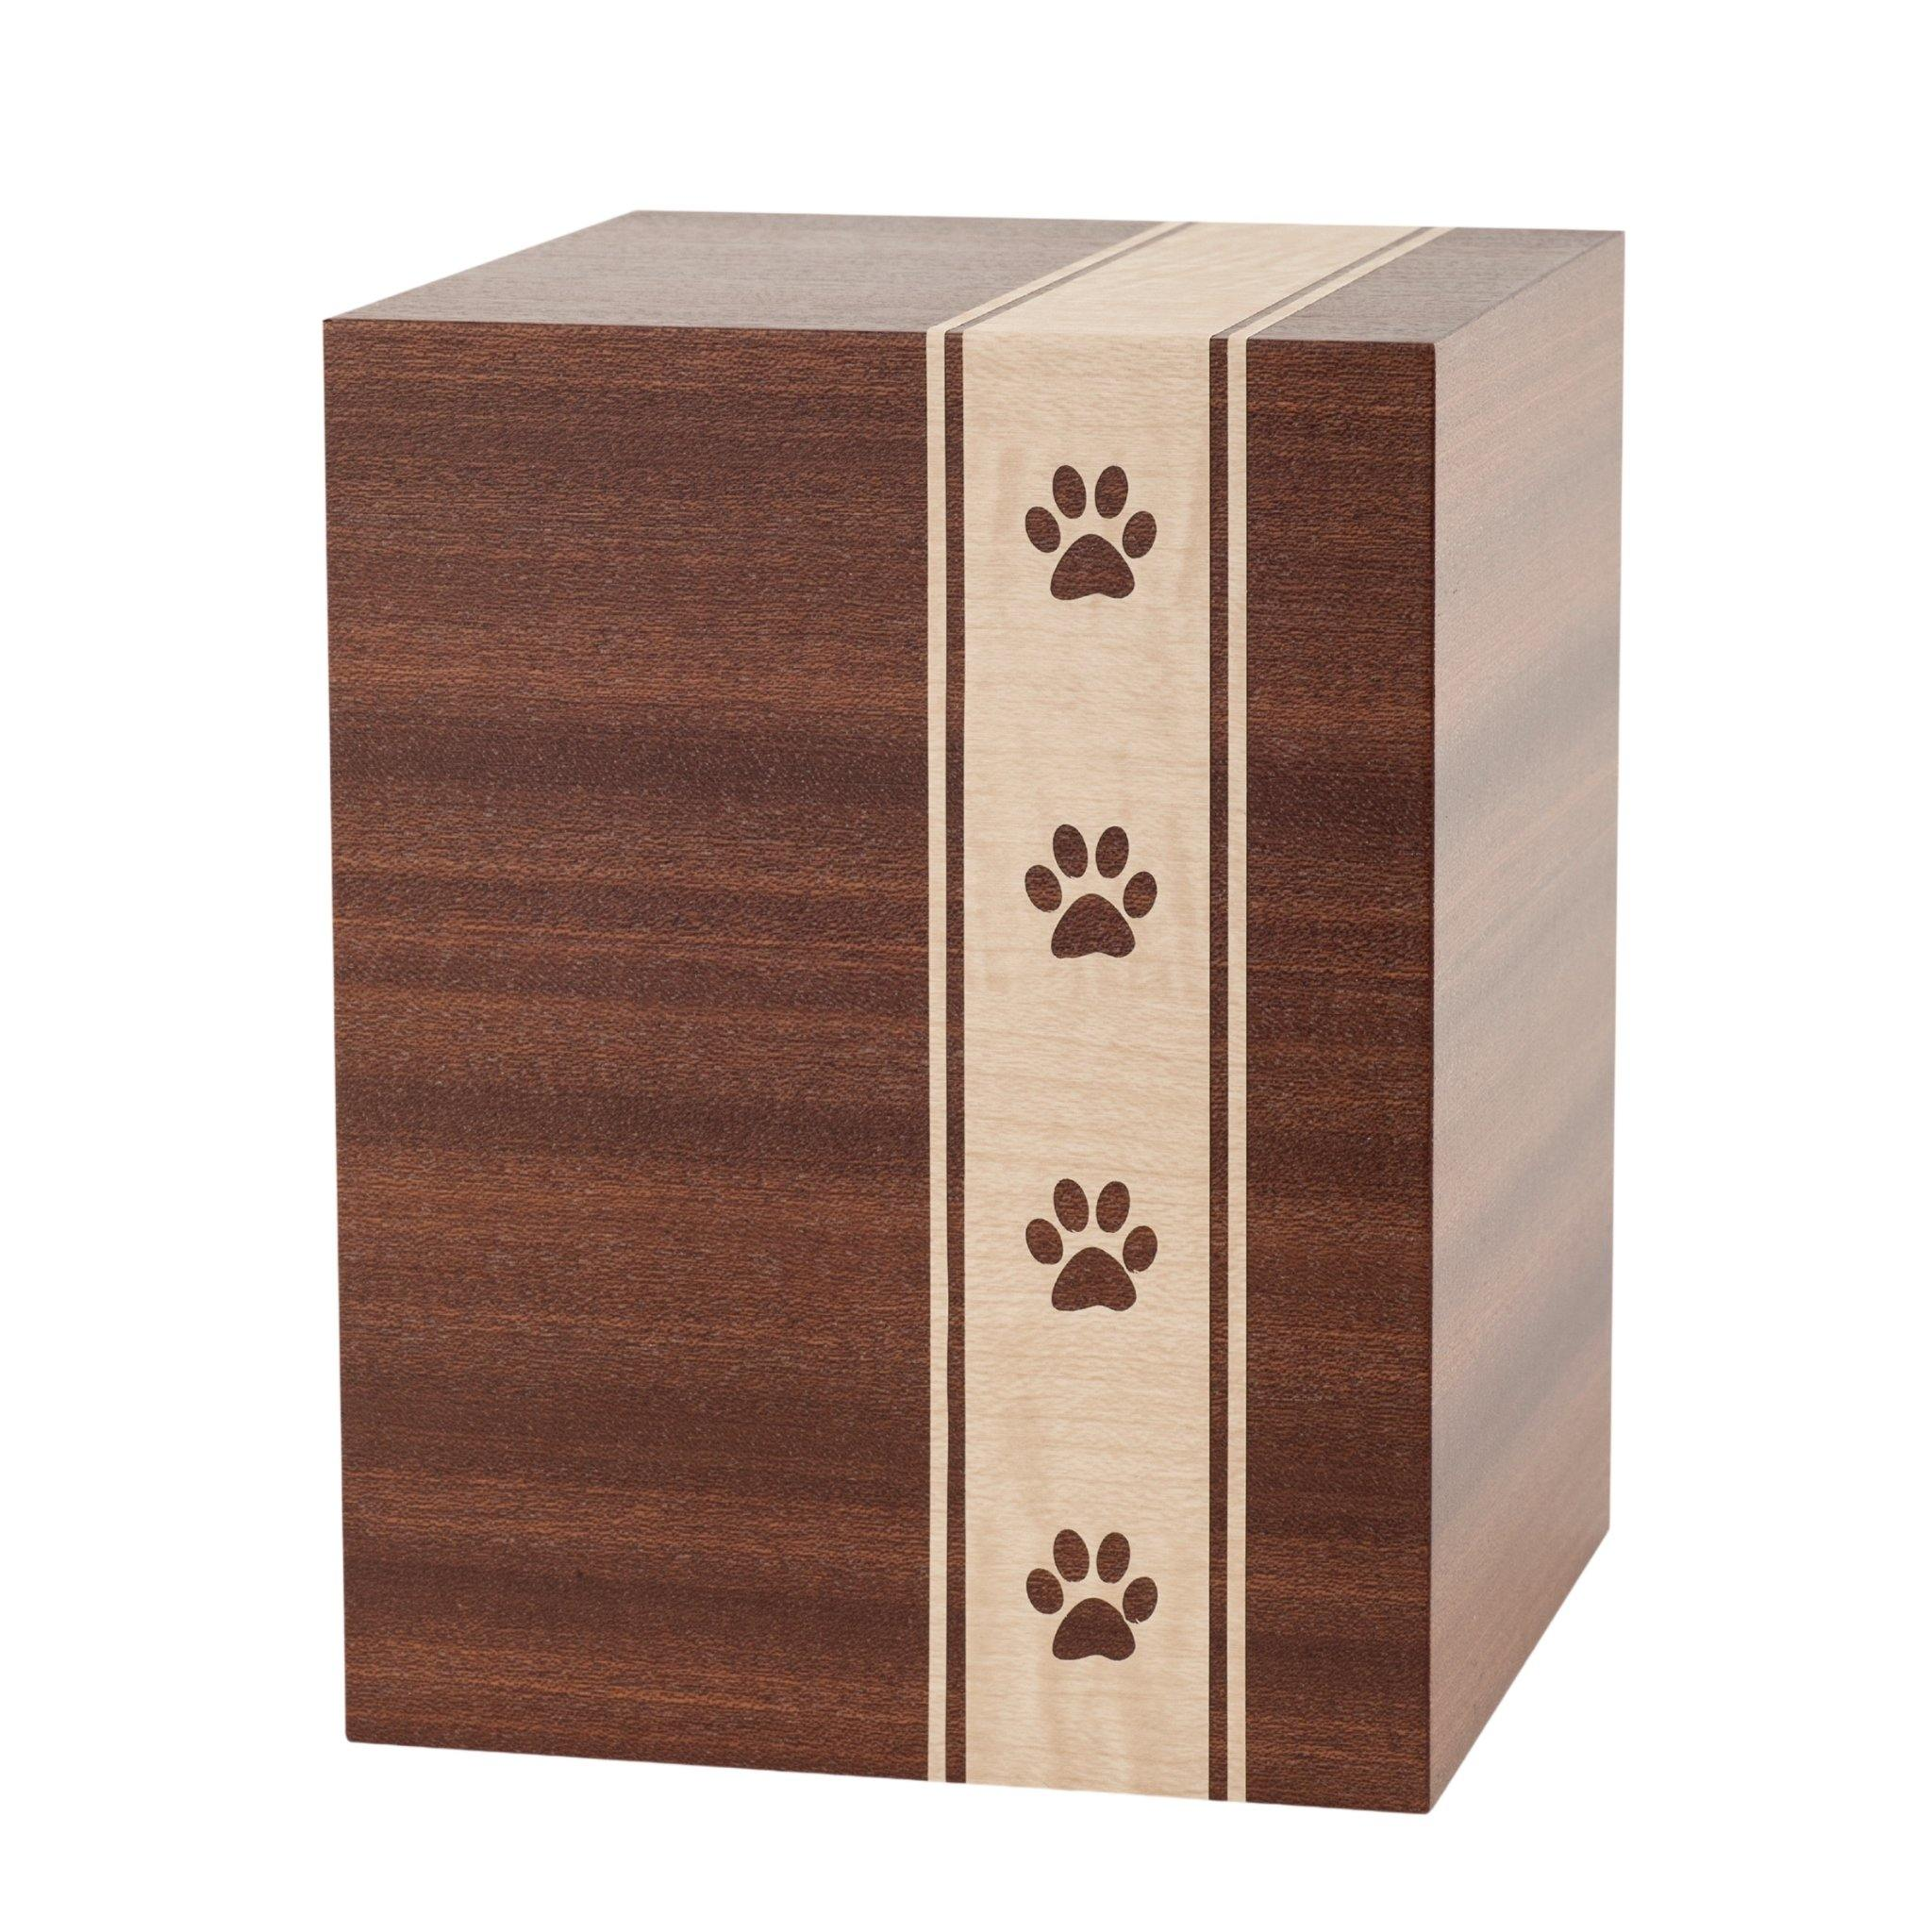 Woodbridge Wood Paws Mahogany Cremation Ashes Urn - Urns UK